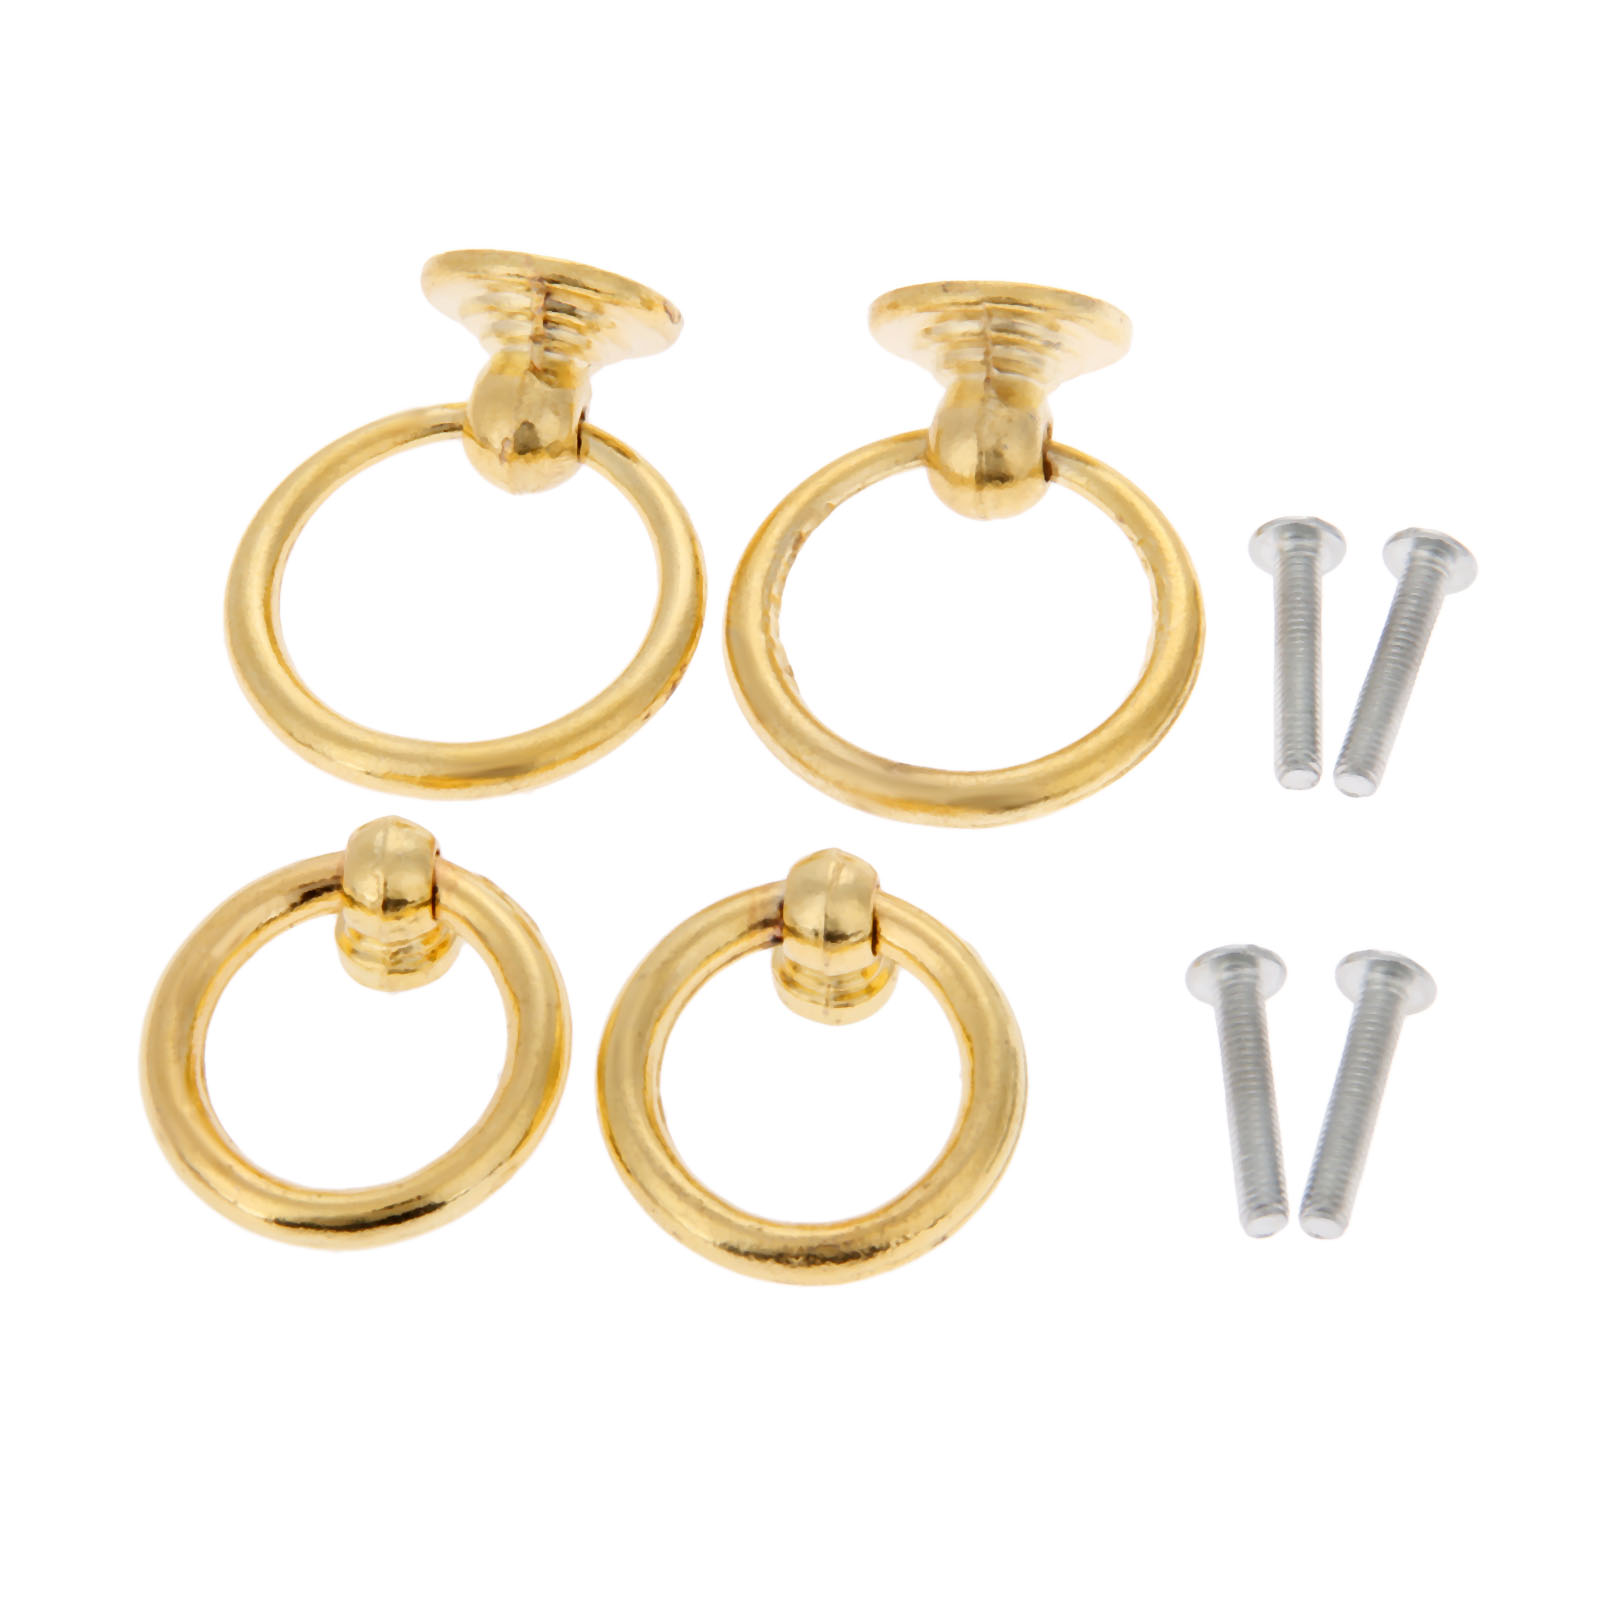 2Pcs Gold Zinc Alloy Cabinet Knob and Handle Jewelry Wood Box Furniture Handle Cupboard Drawer Door Ring Knob Furniture Hardware in Cabinet Pulls from Home Improvement